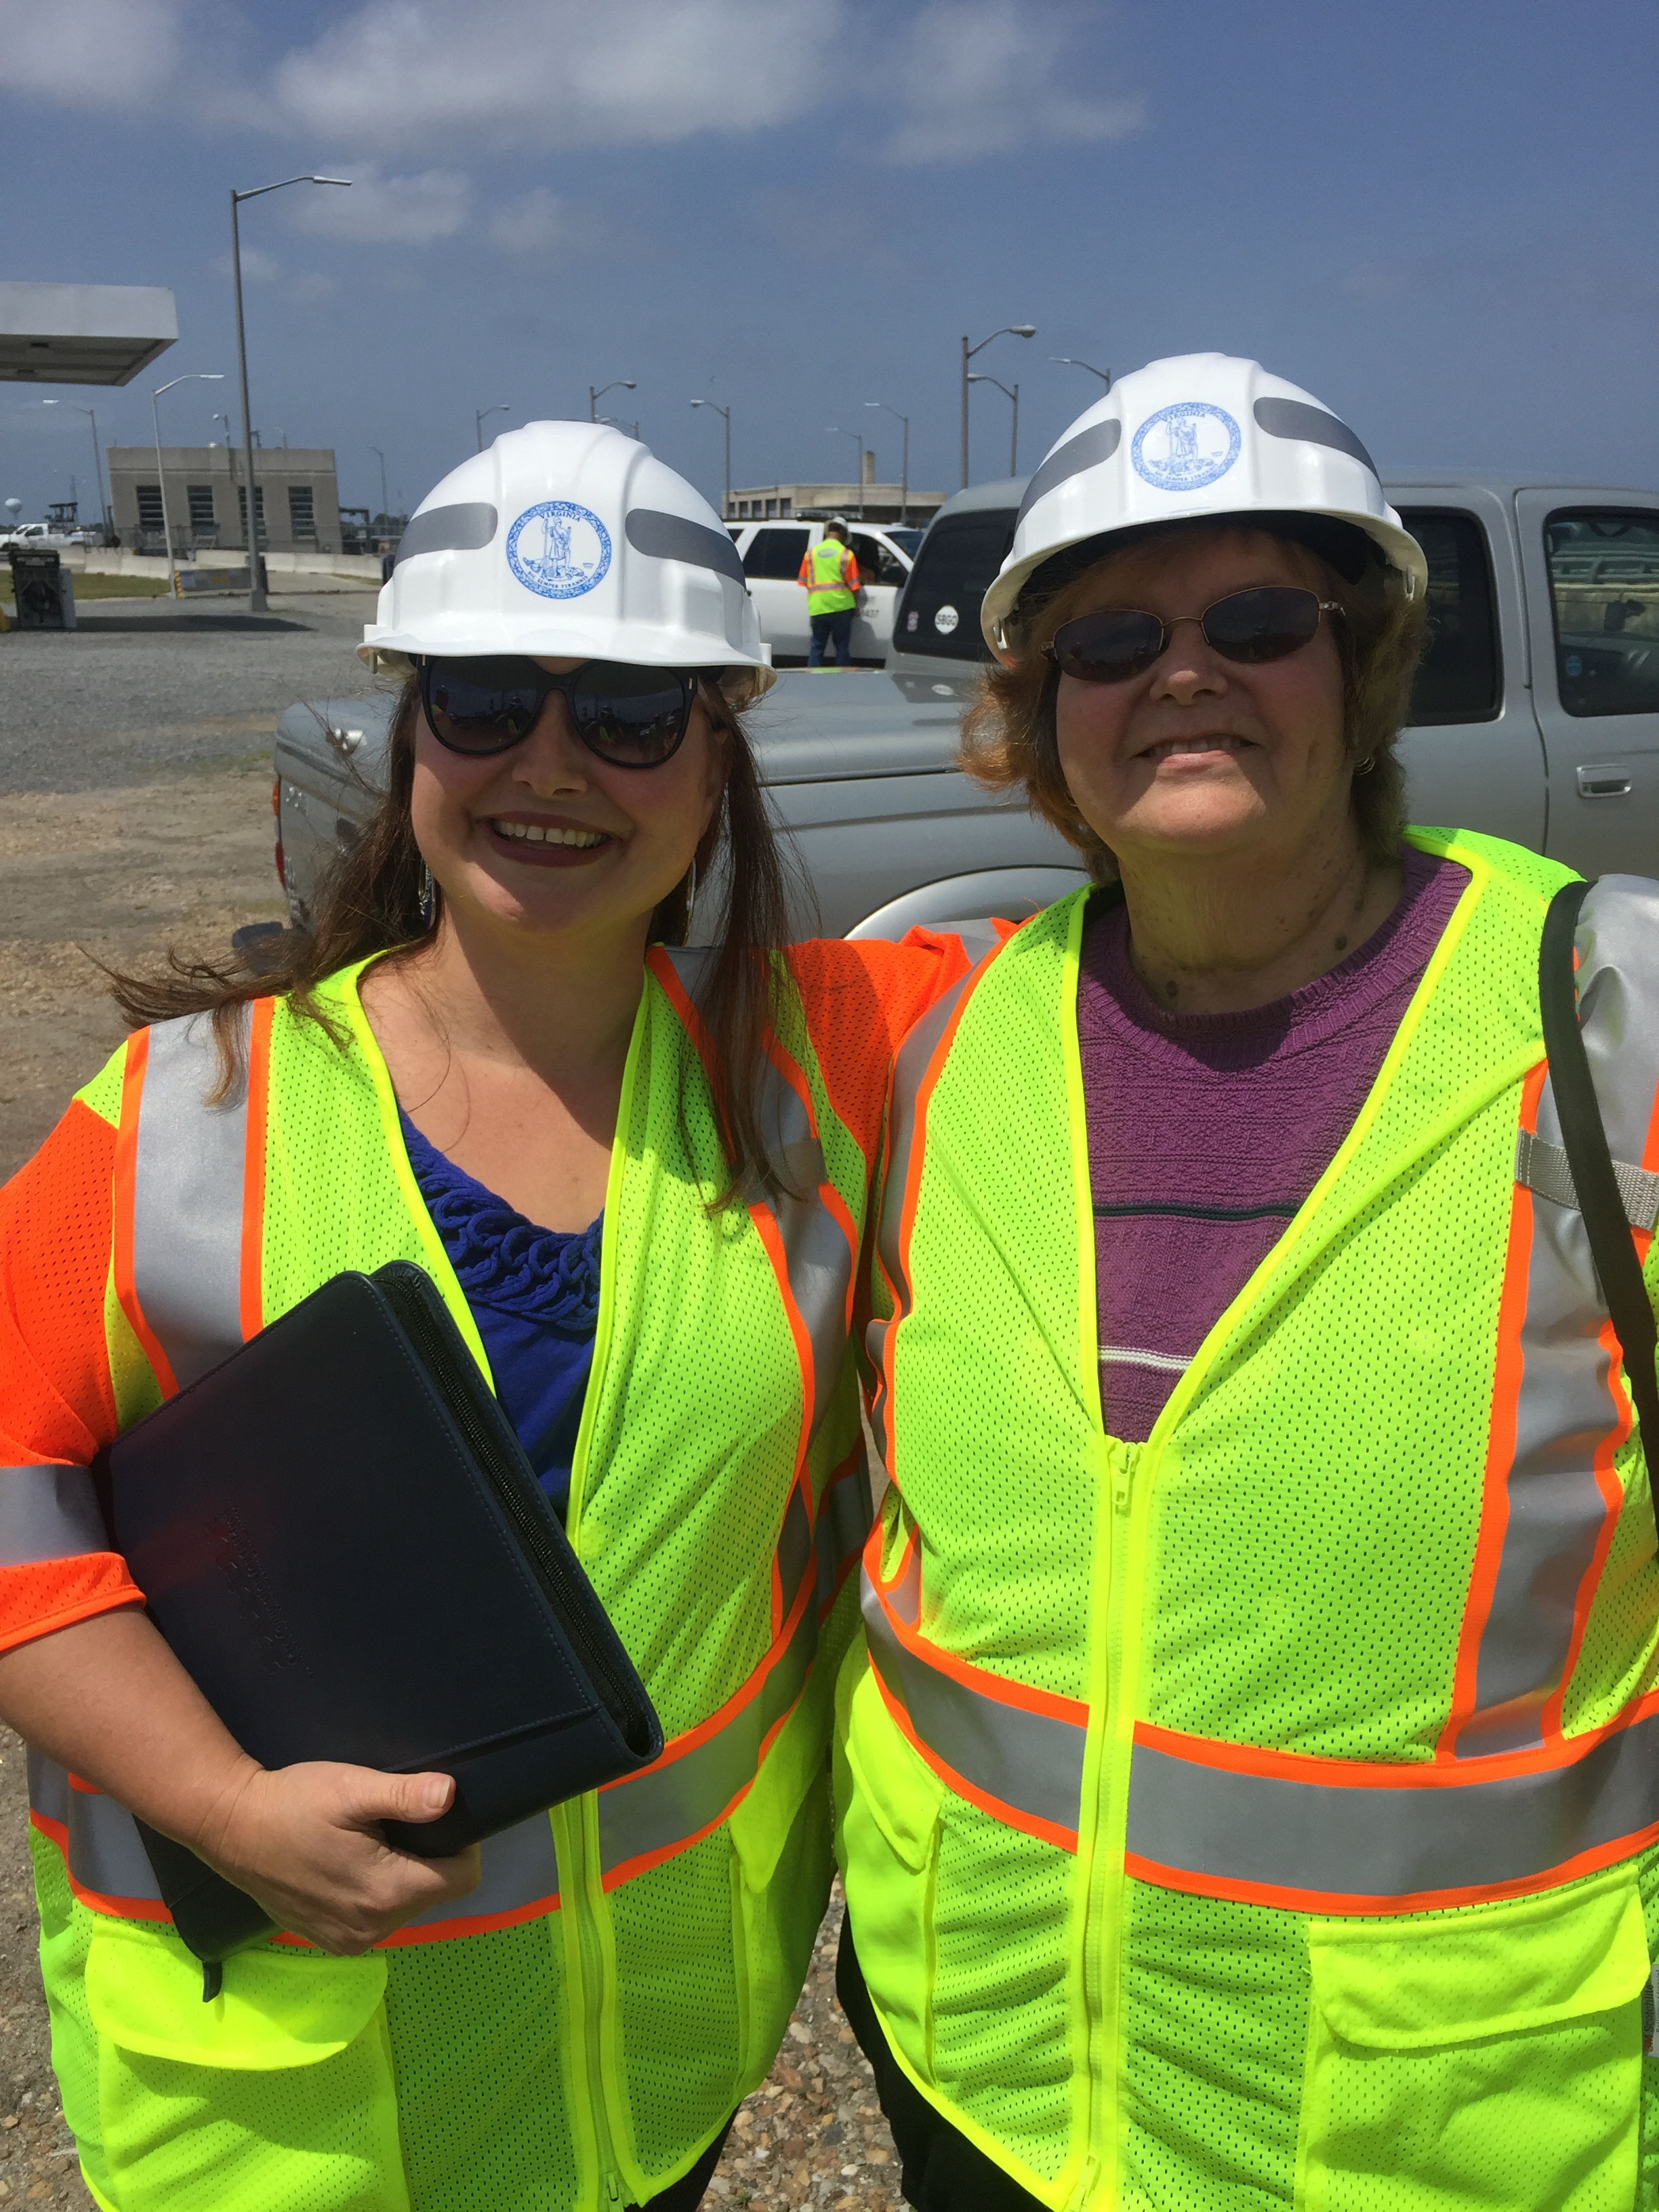 Jenny Redick (HRPDC), left, and Cheryl Simpson (Endpendence Ceter) Attended VDOT's LRAD Test at the HRBT.